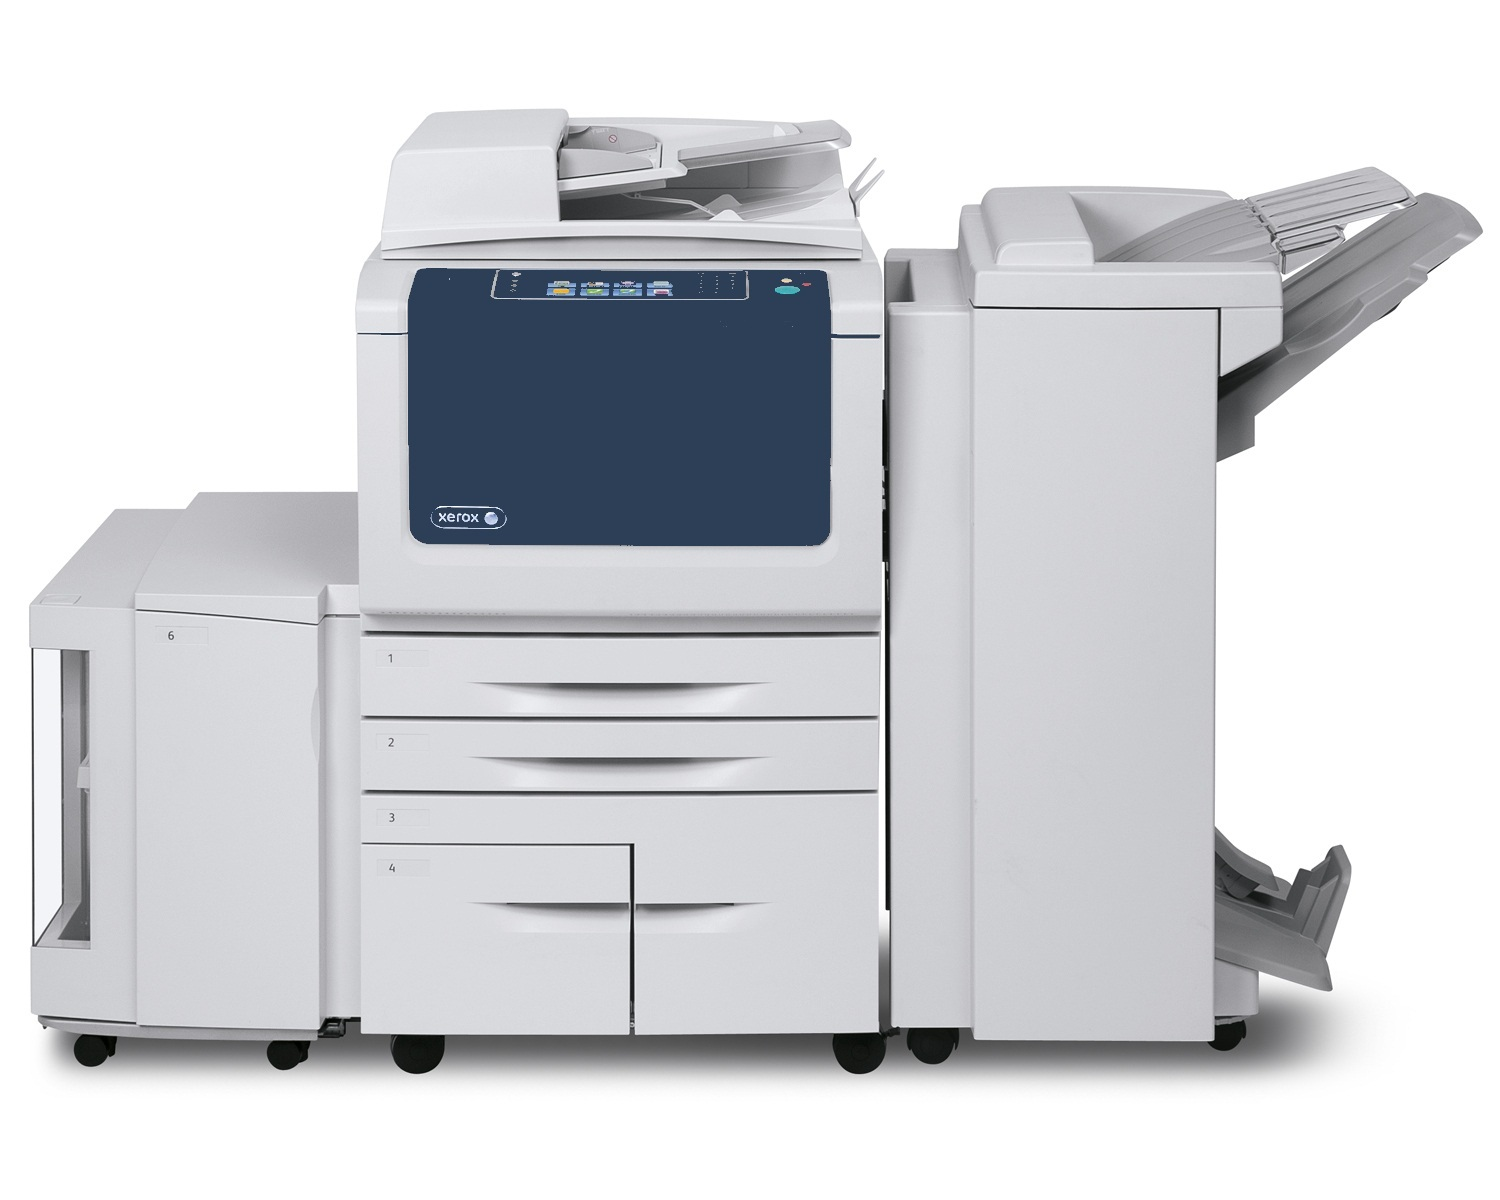 Xerox workcentre 5845 details the